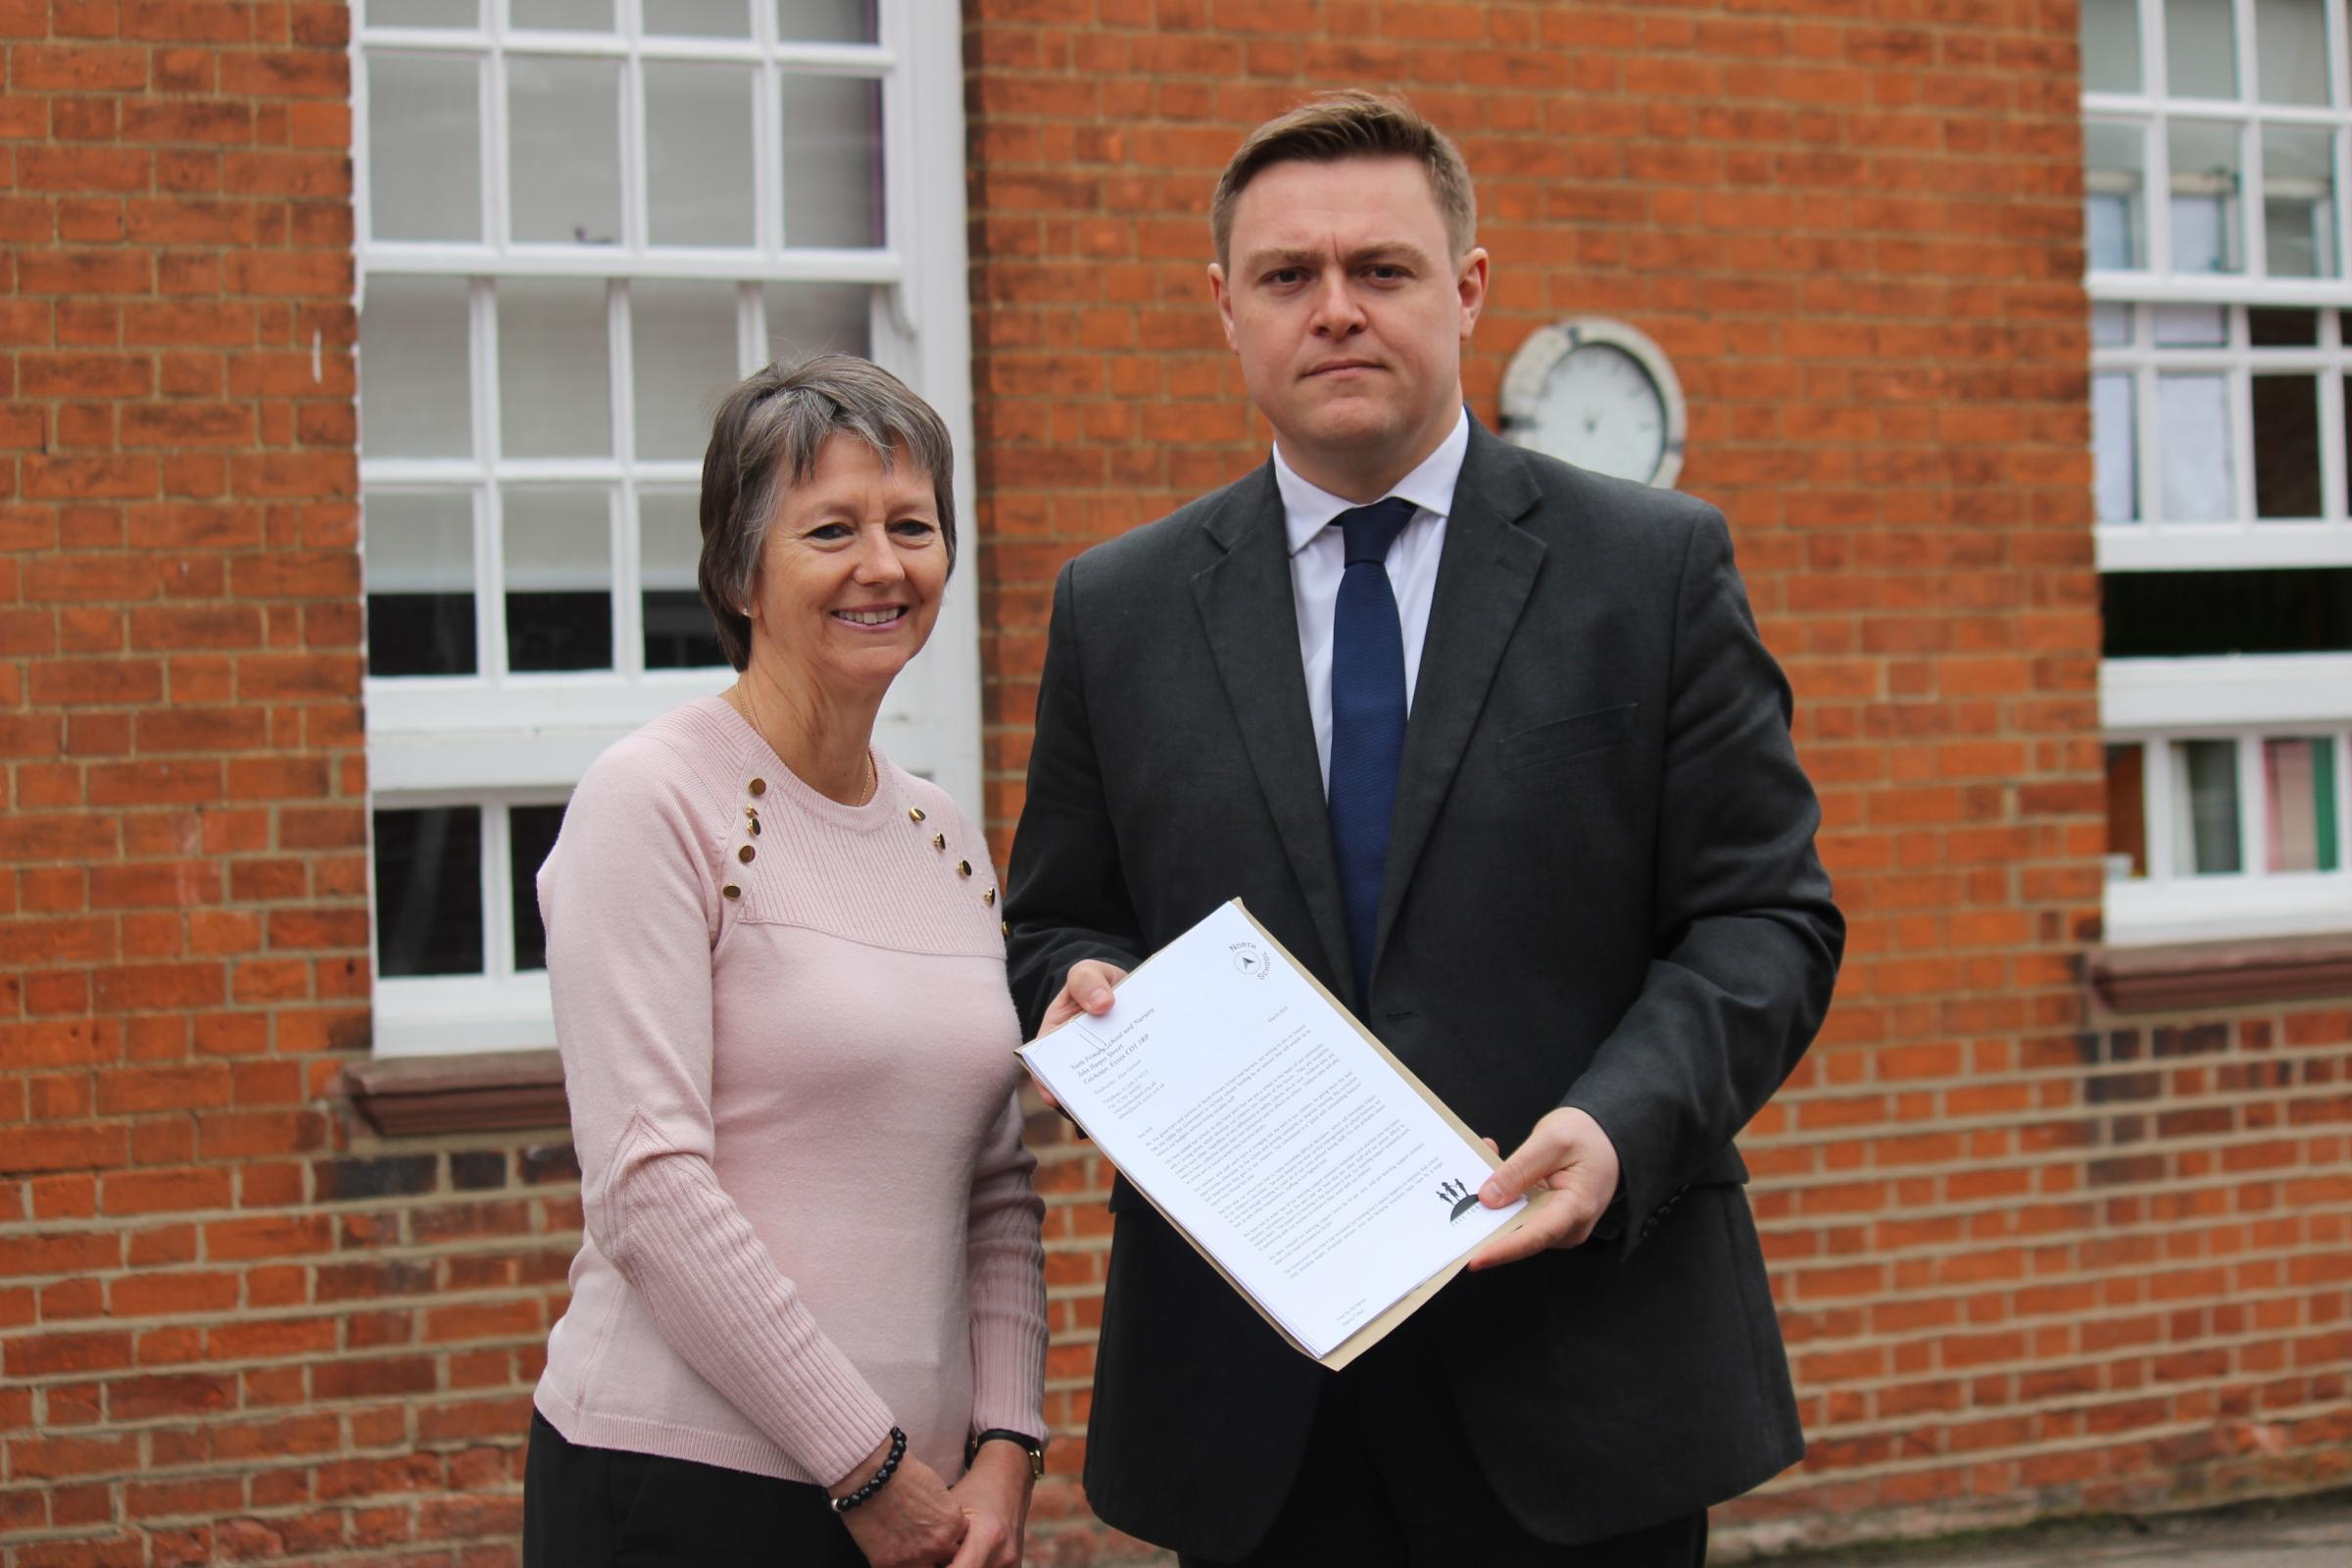 Pressure - Jan Blackwell, chair of governors at North Primary School, presenting letter signed by nearly 300 parents, to Will Quince, MP for Colchester, asking him to demand more money for schools from the Government.